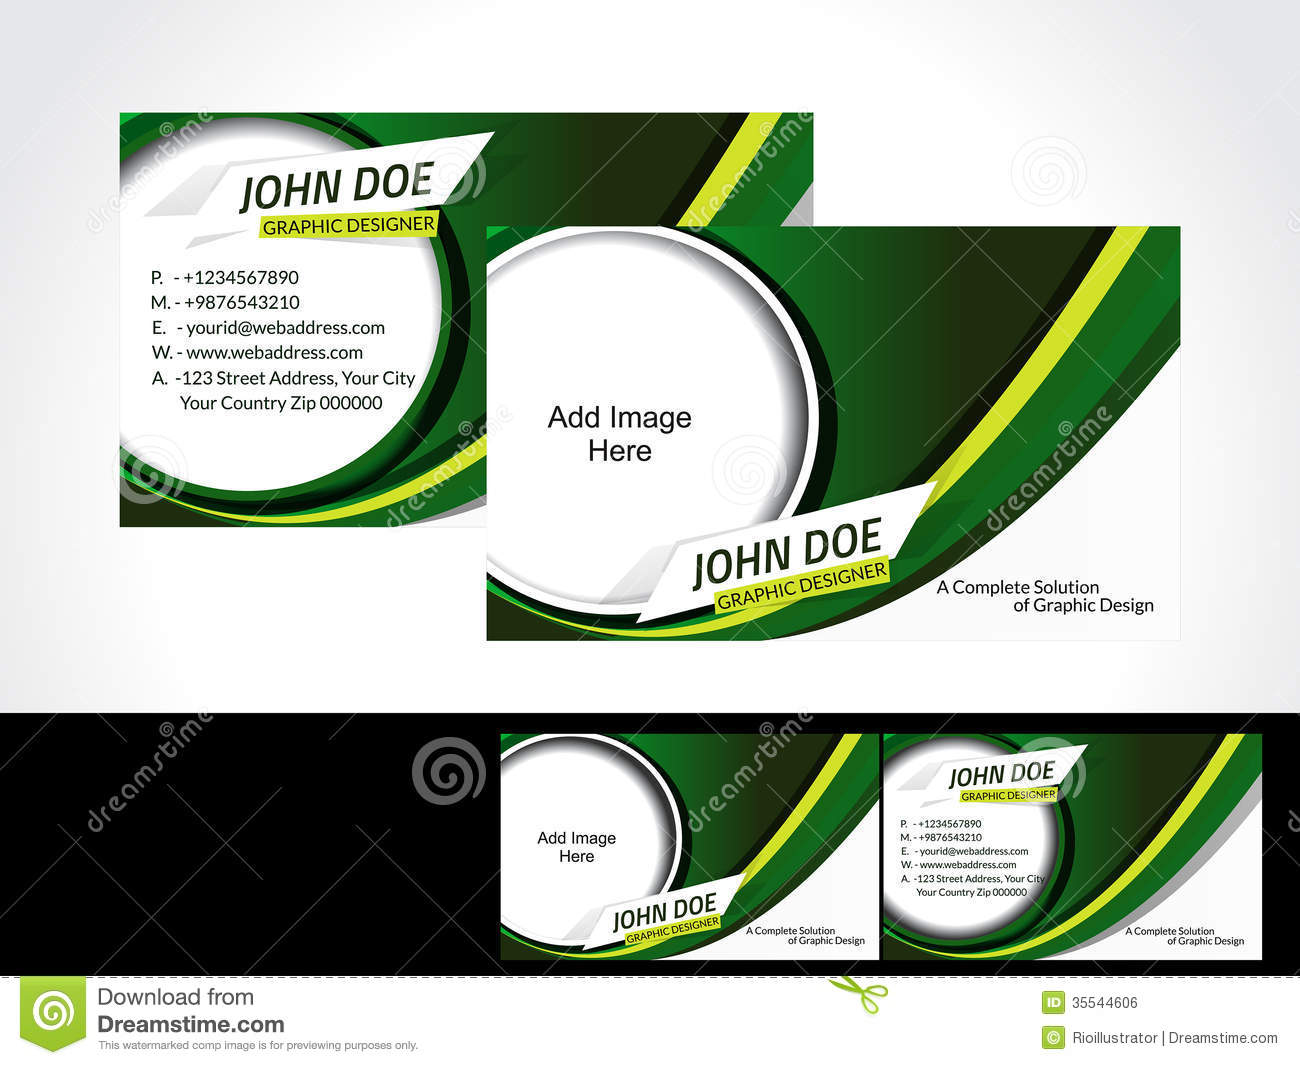 Green Business Card Design Royalty Free Stock Image - Image: 35544606